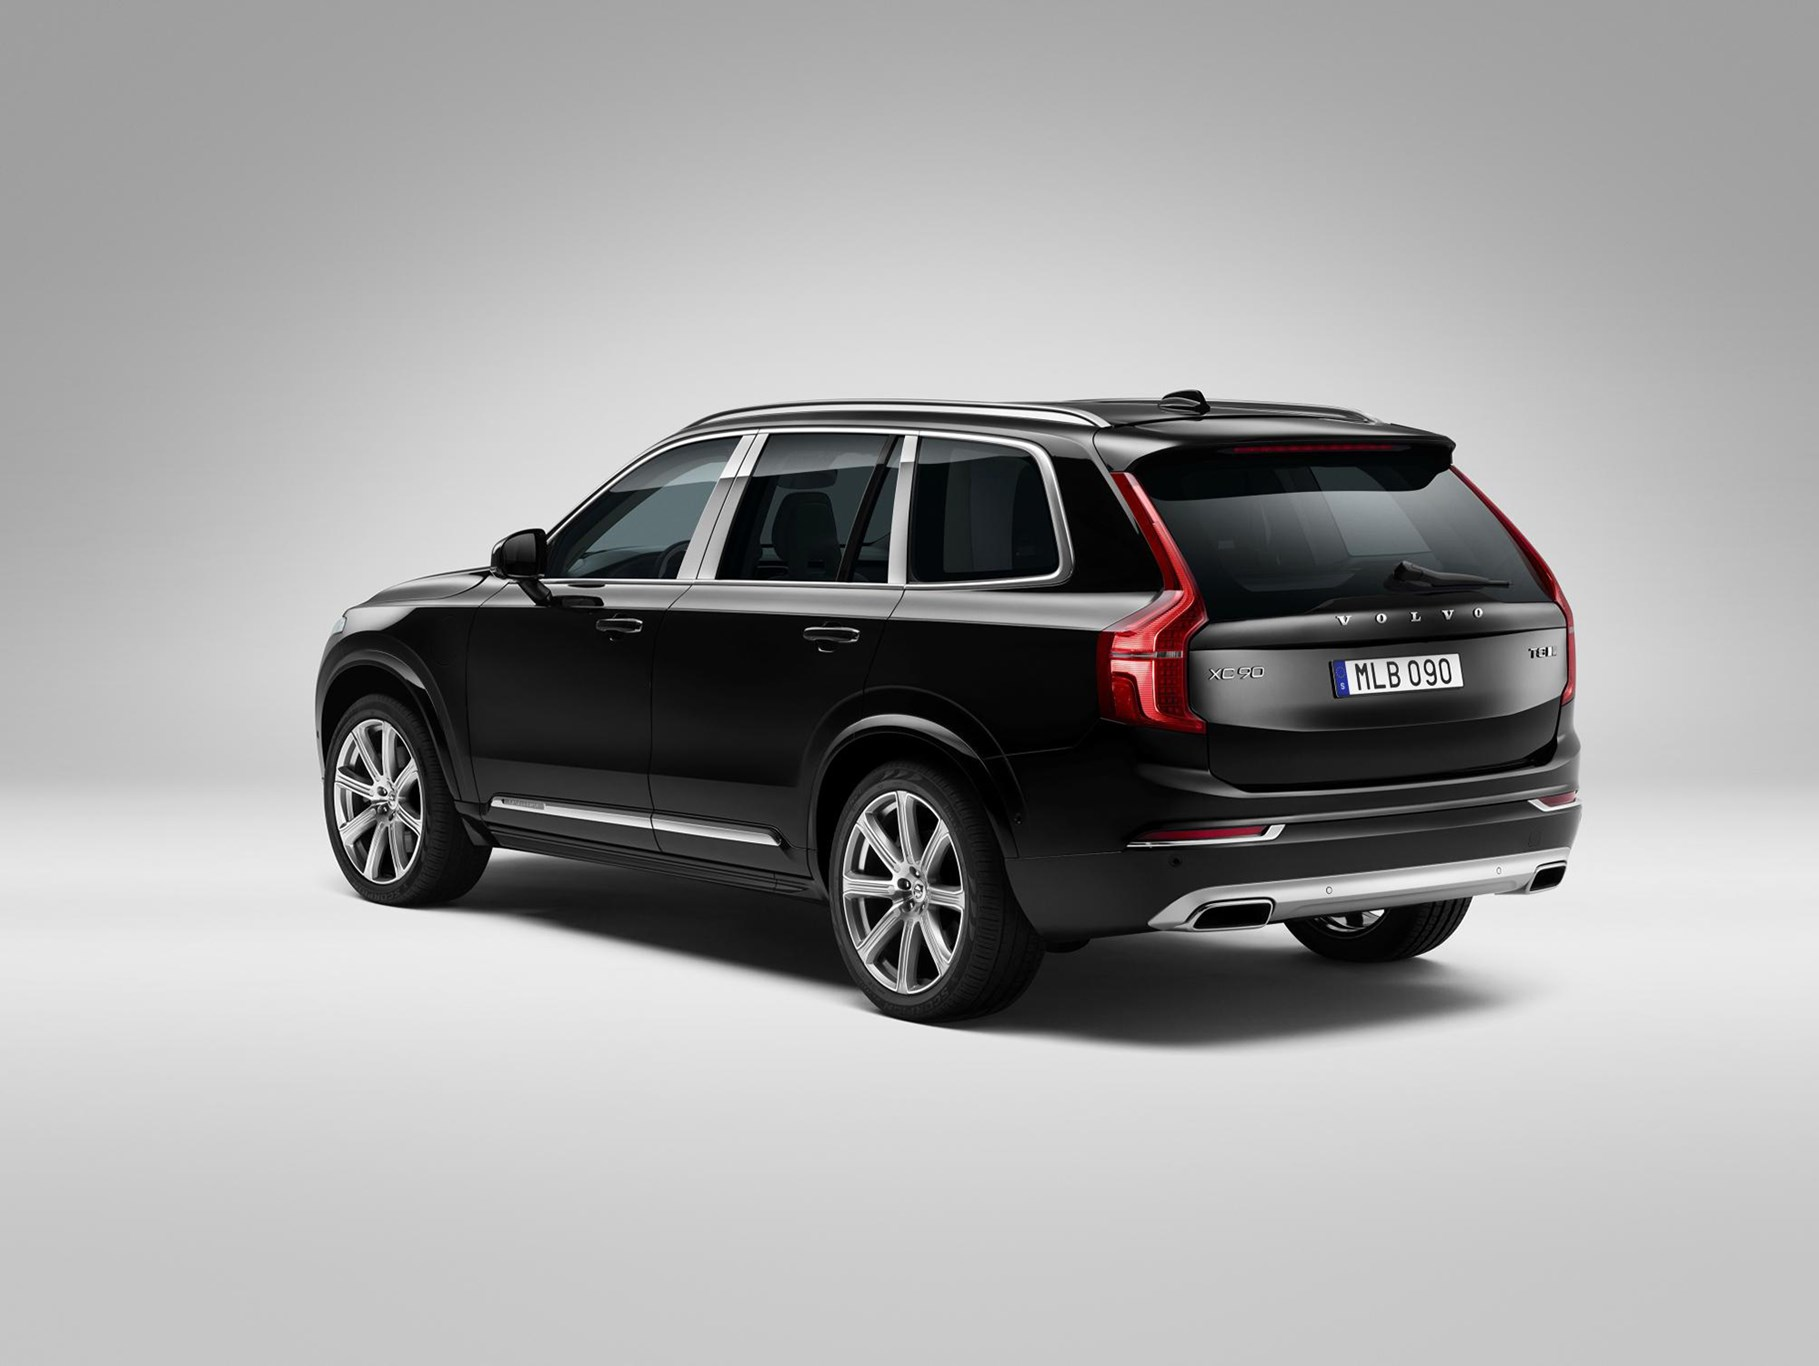 volvo xc90 excellence four seater suv unveiled at 2015 shanghai show by car magazine. Black Bedroom Furniture Sets. Home Design Ideas